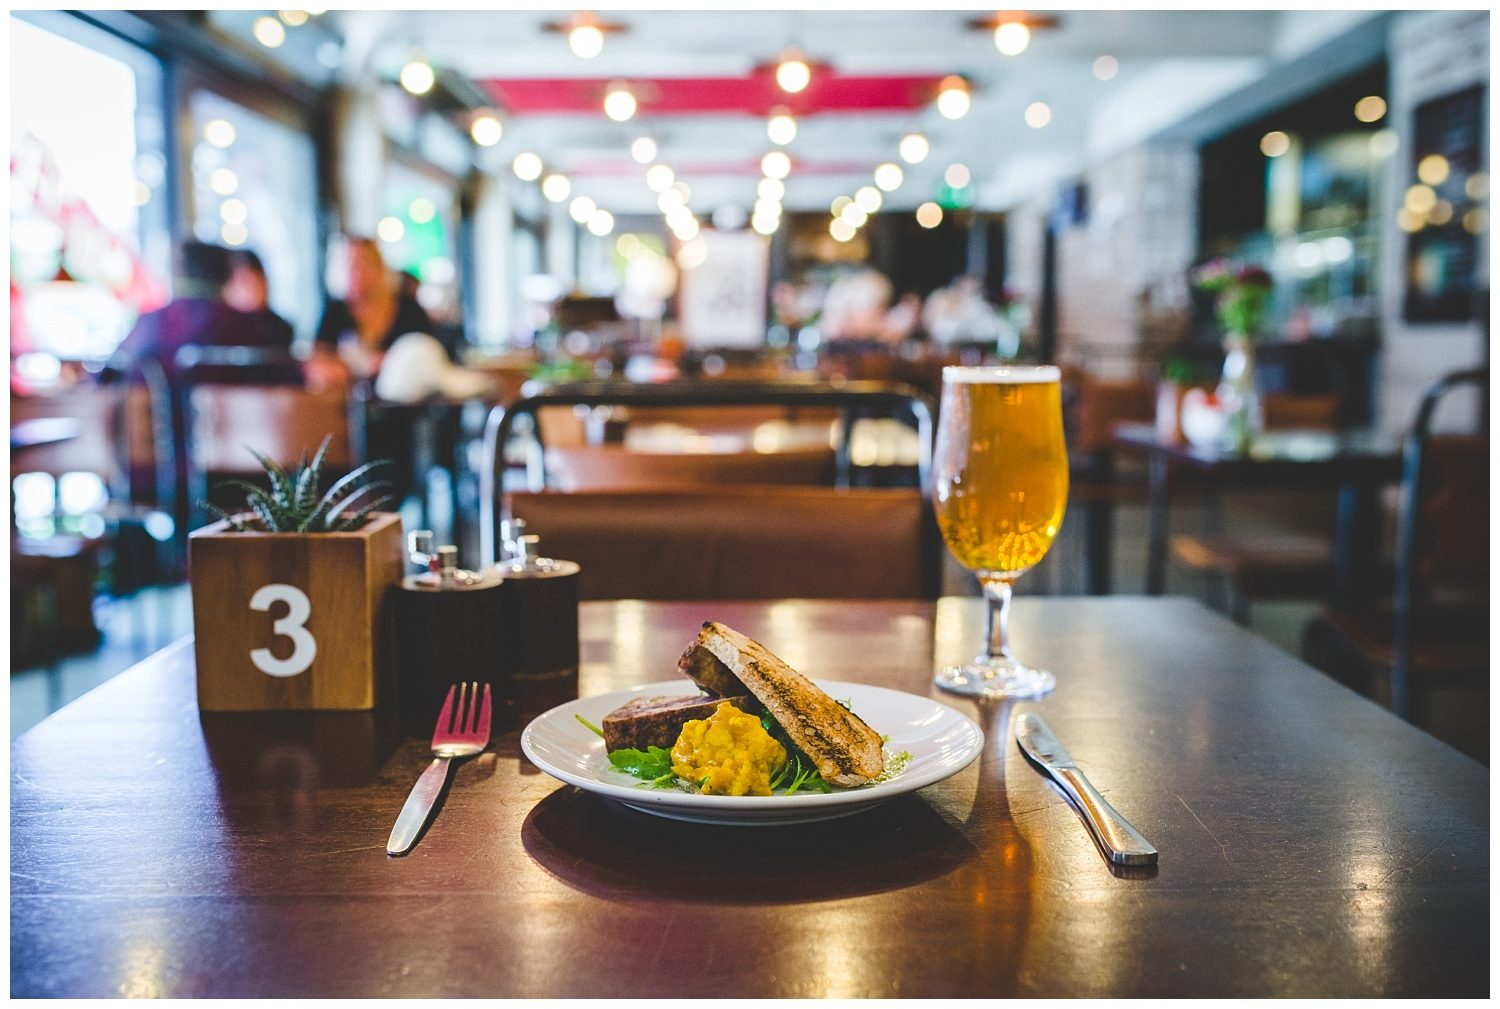 Liverpool Everyman street cafe food - Liverpool commercial photography